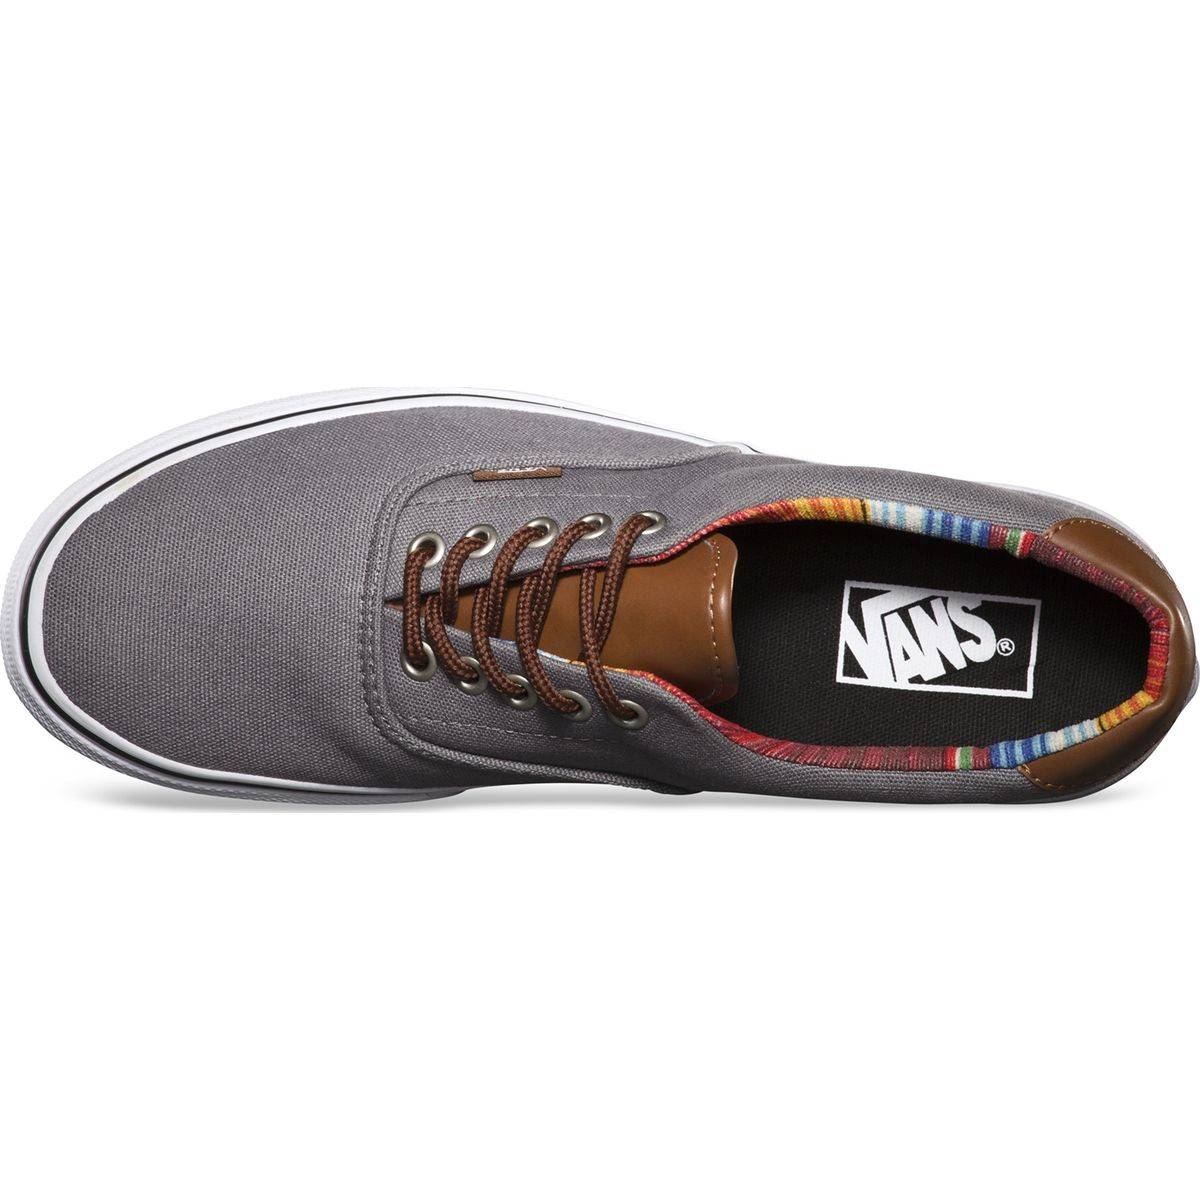 e7f1103b01f627 Vans C L ERA 59 Shoes - Steel Gray Multi Stripe - 8.0